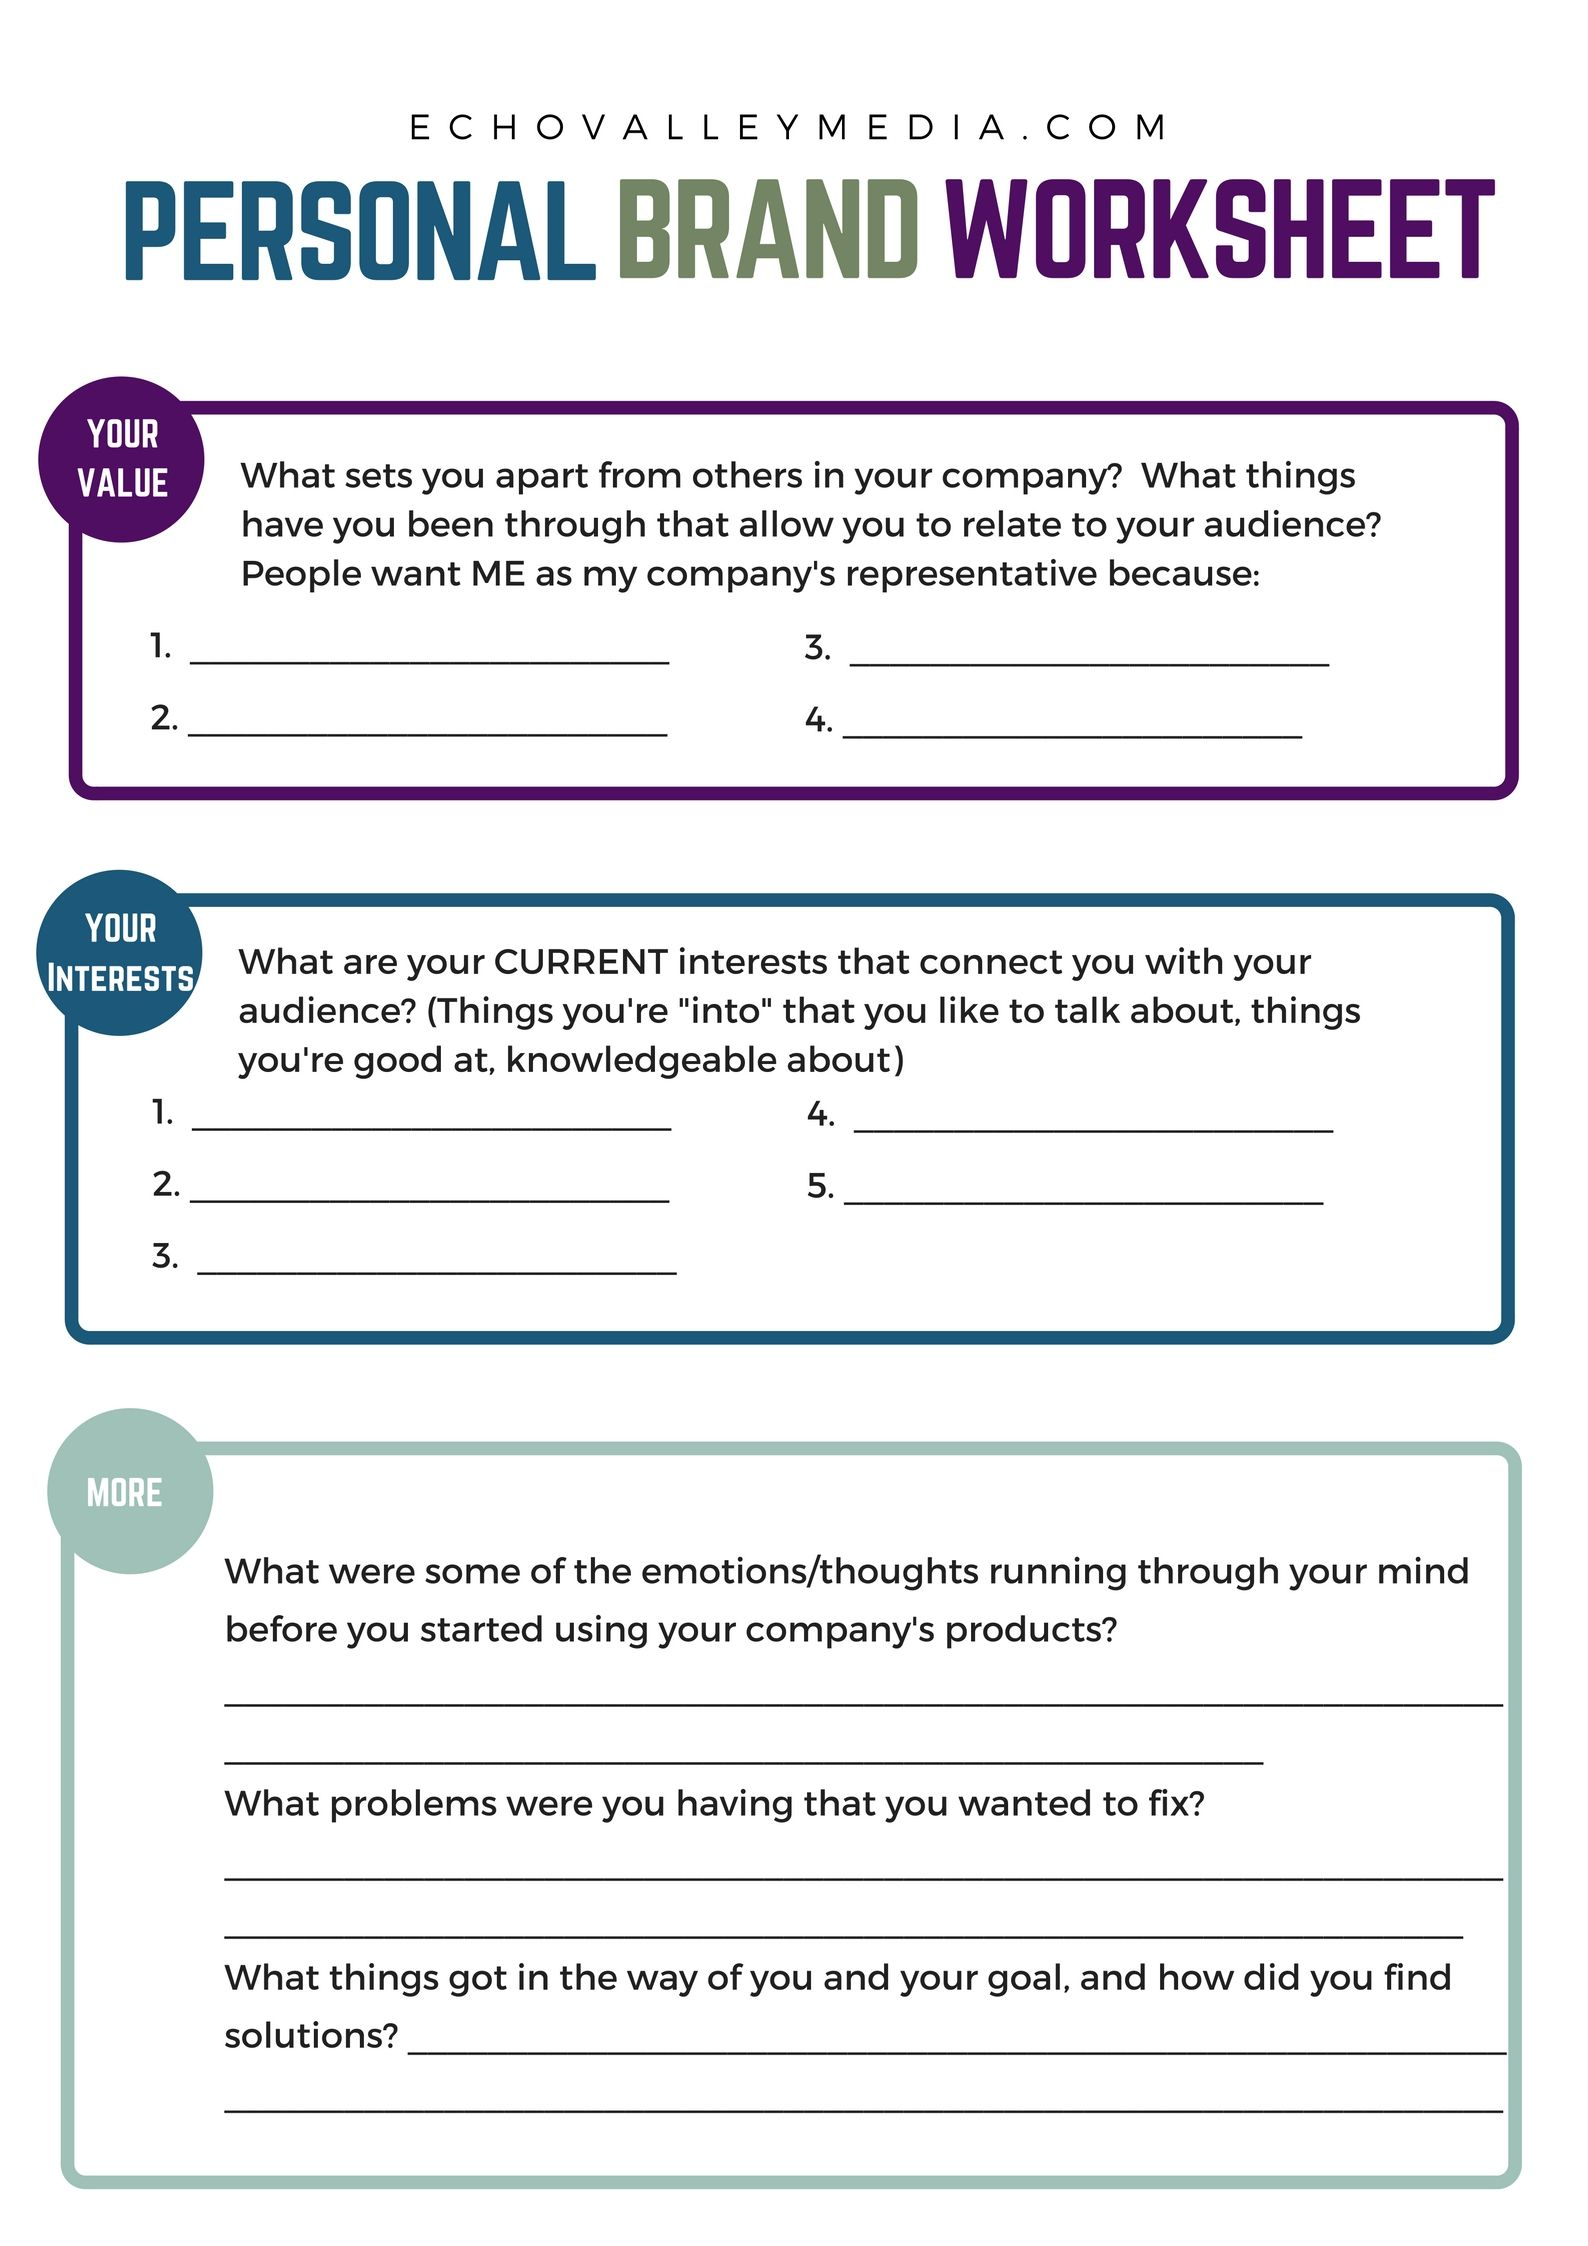 Personal Brand Worksheet For Network Marketers